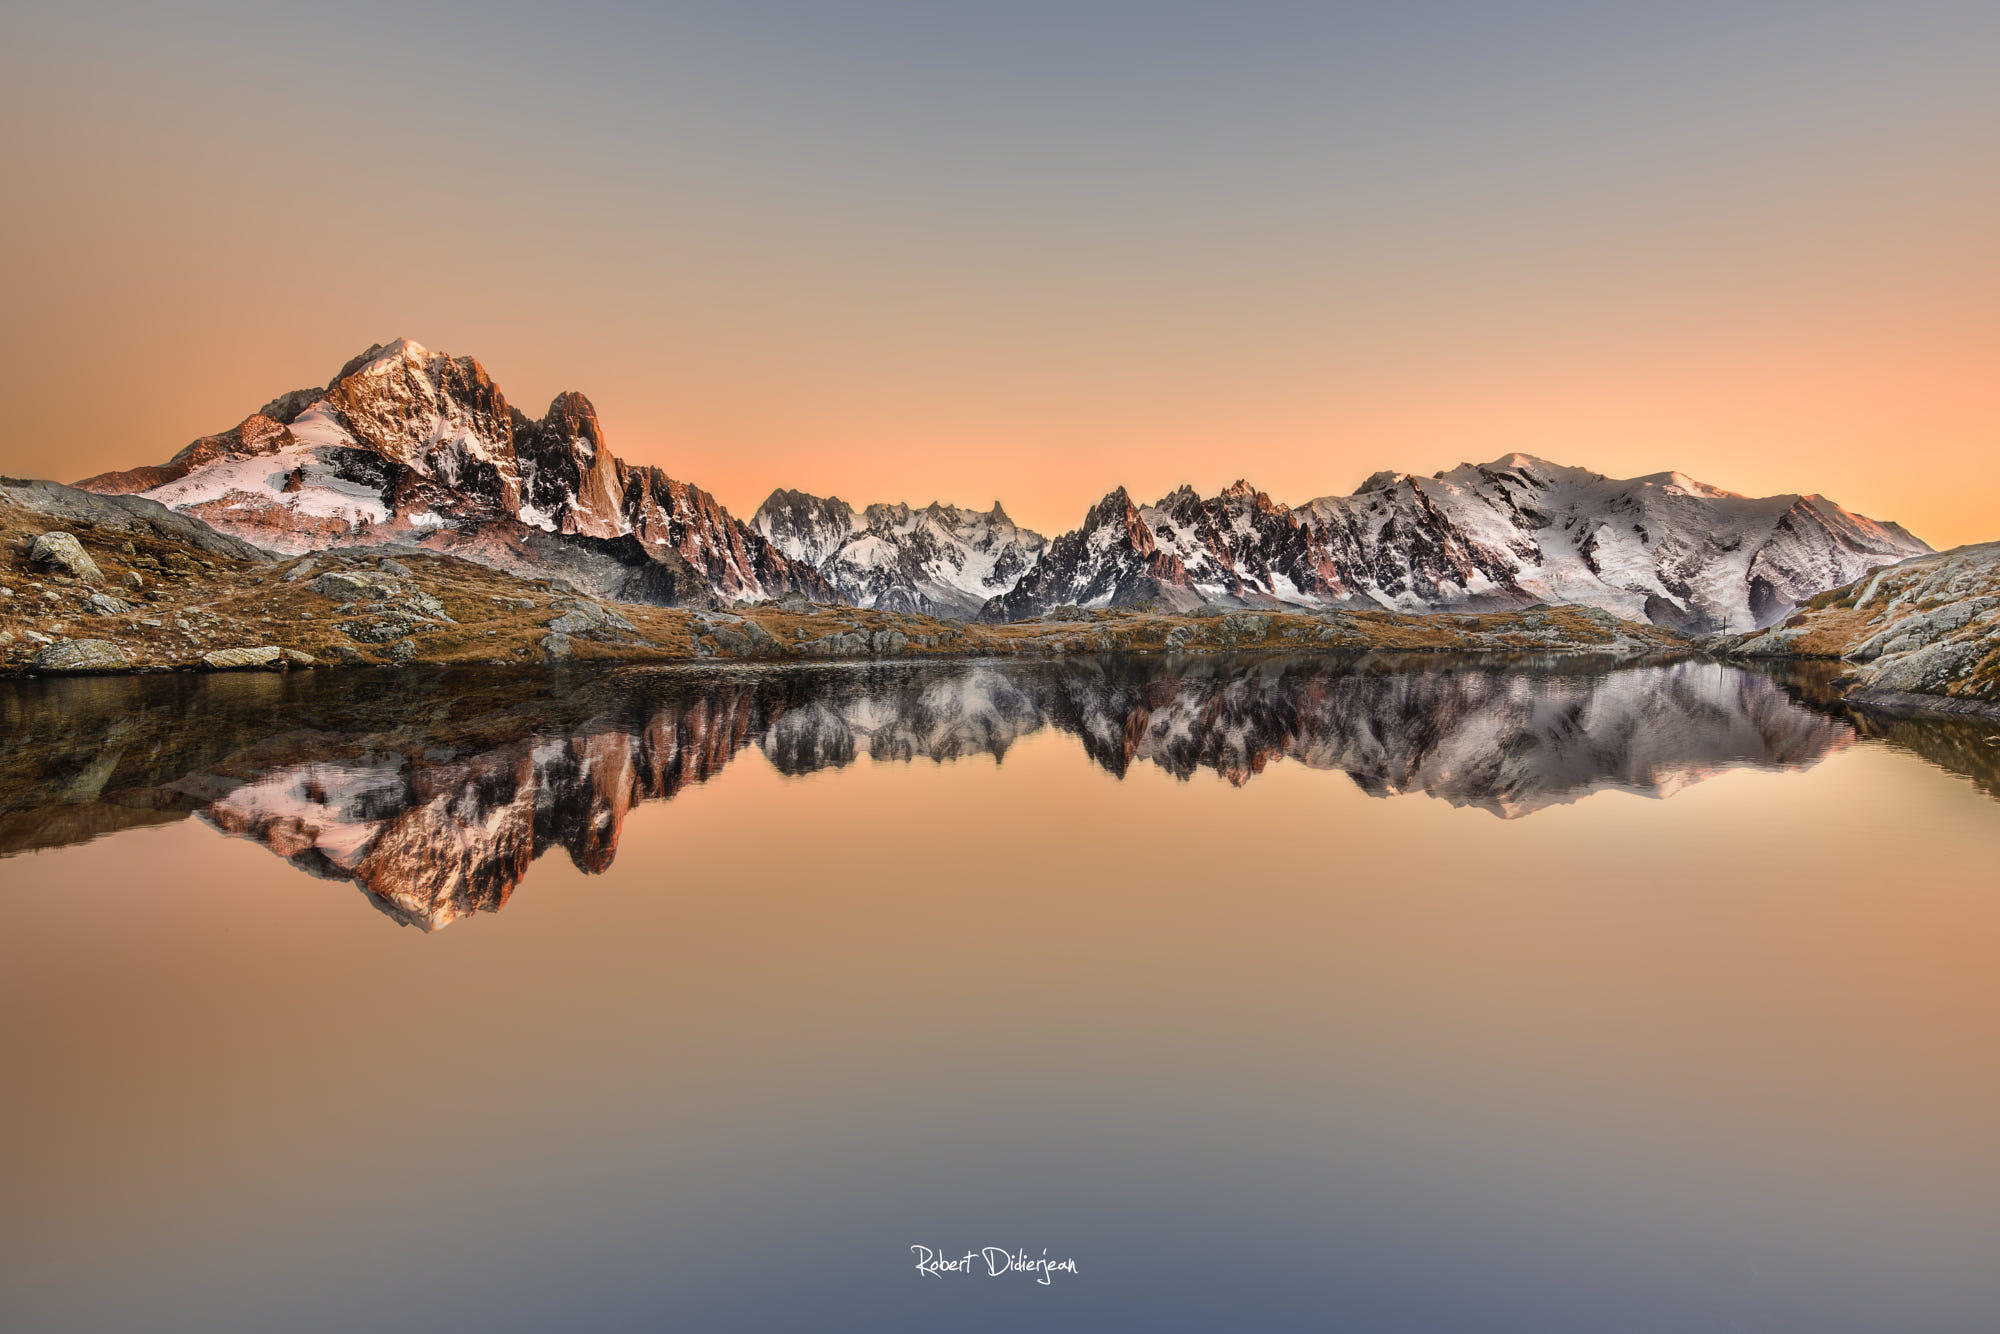 Mont Blanc in reflection